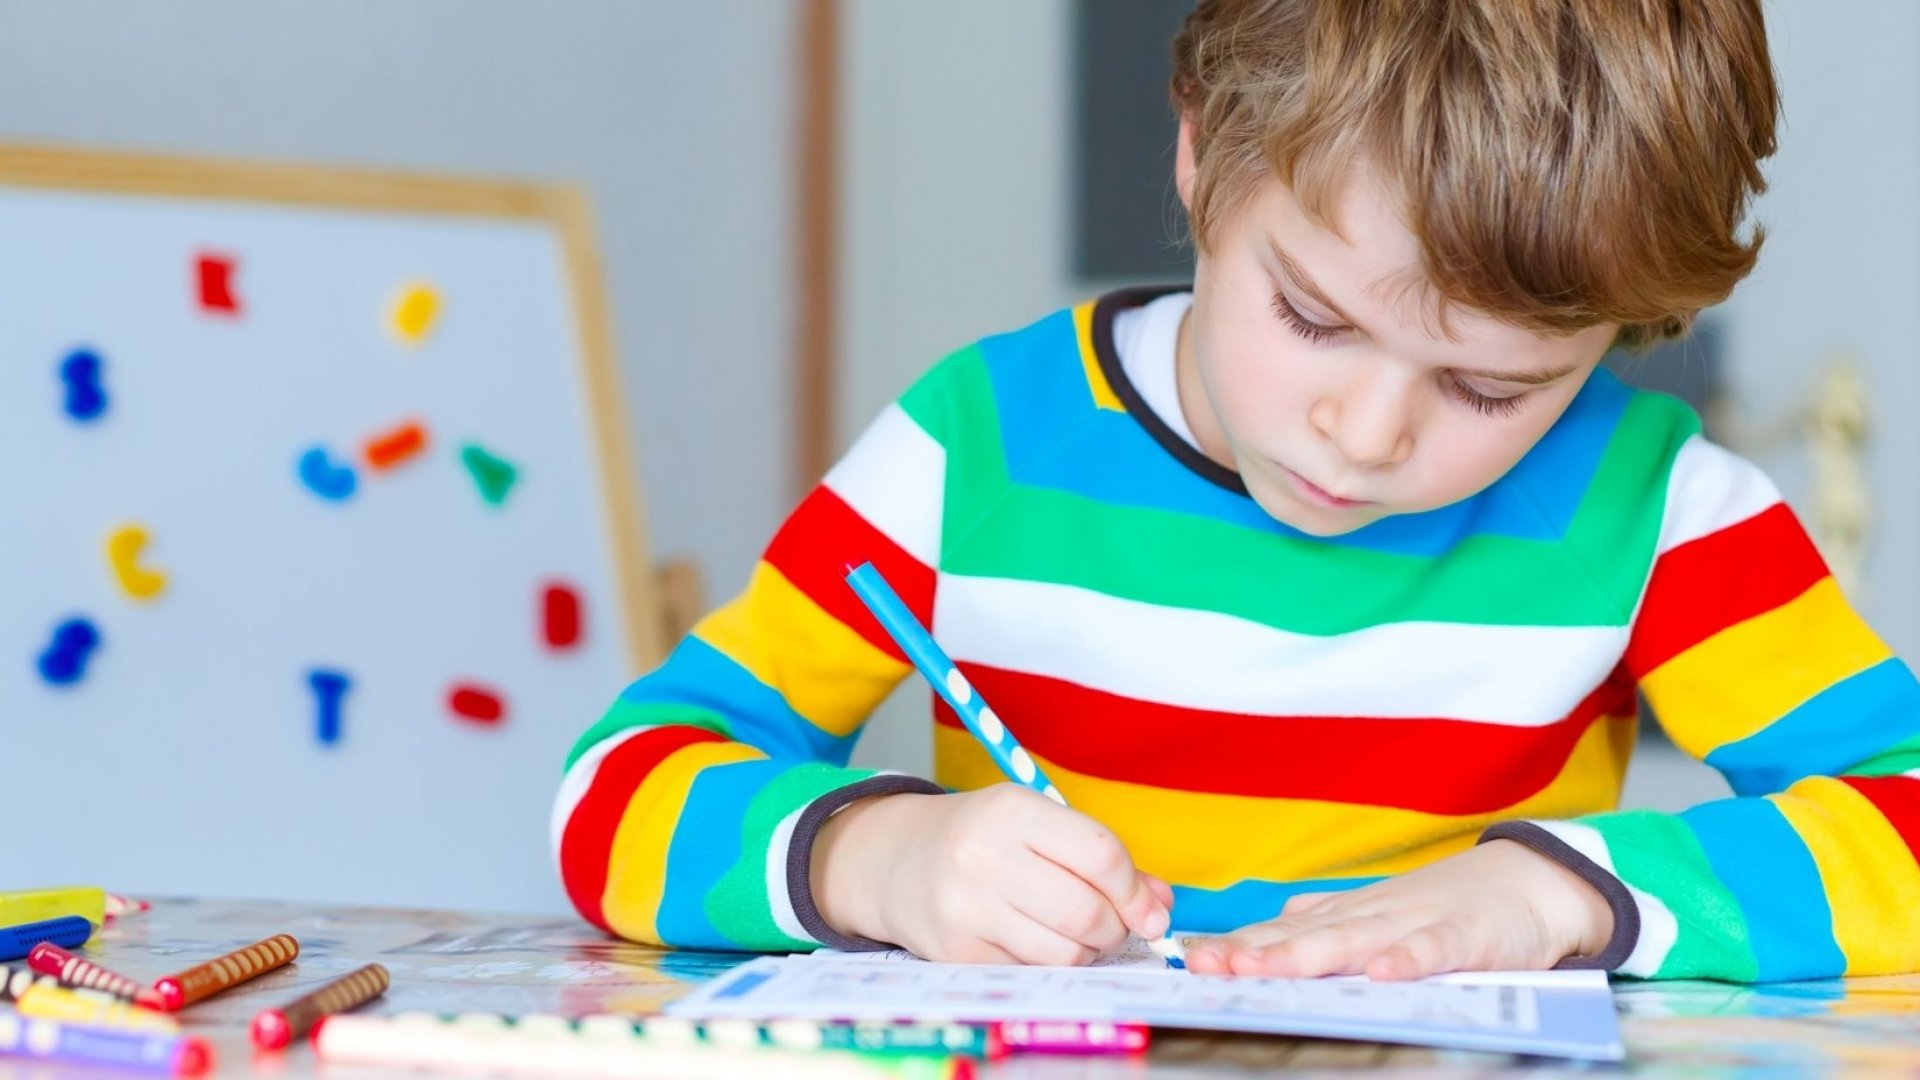 Step Away From That Keyboard. Handwriting Benefits Both Young and Adult Brains